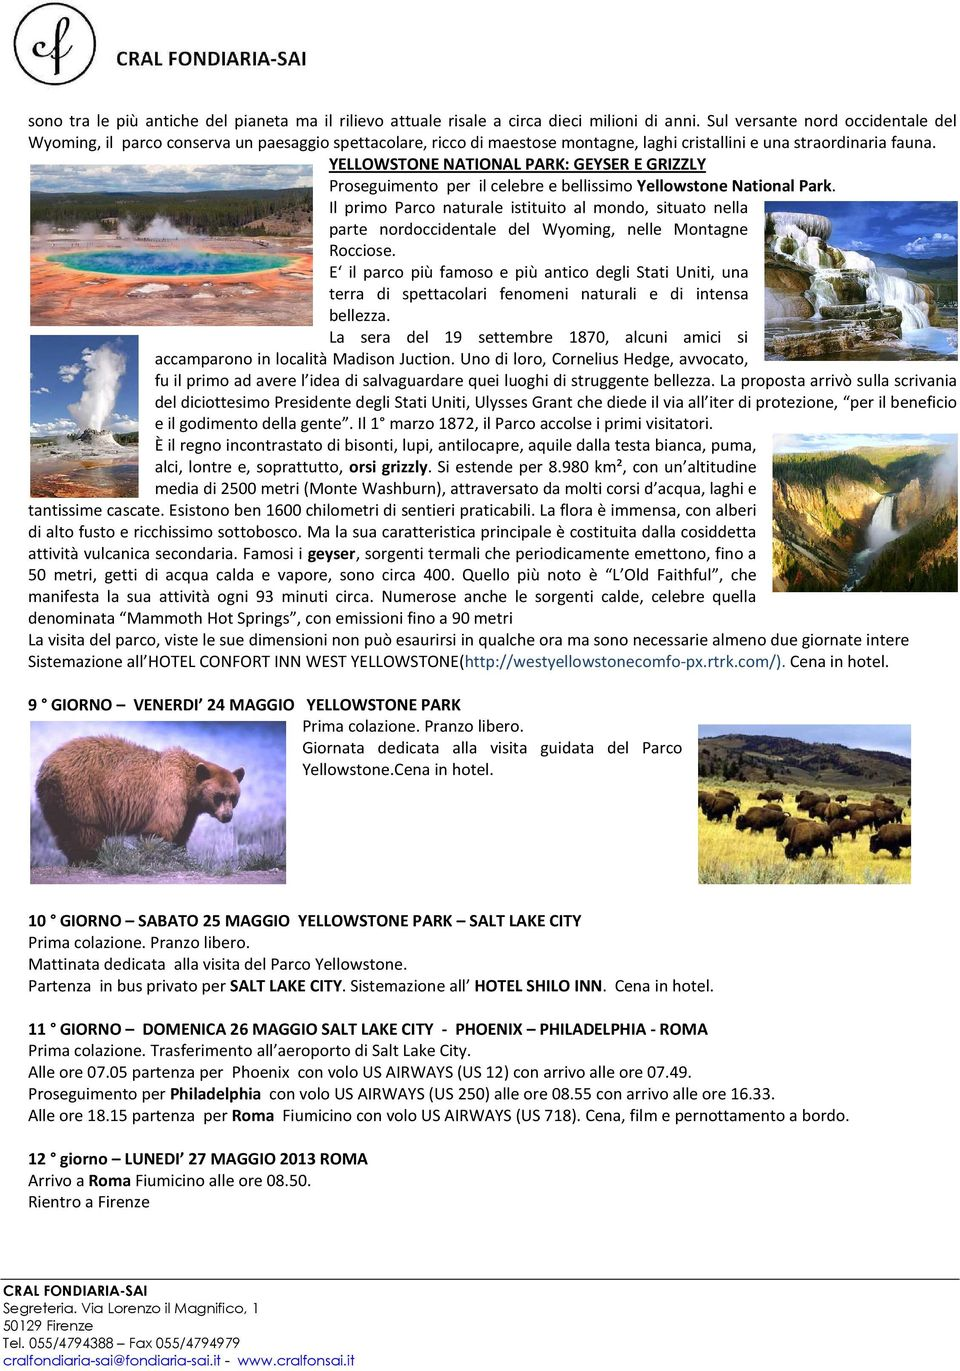 YELLOWSTONE NATIONAL PARK: GEYSER E GRIZZLY Proseguimento per il celebre e bellissimo Yellowstone National Park.